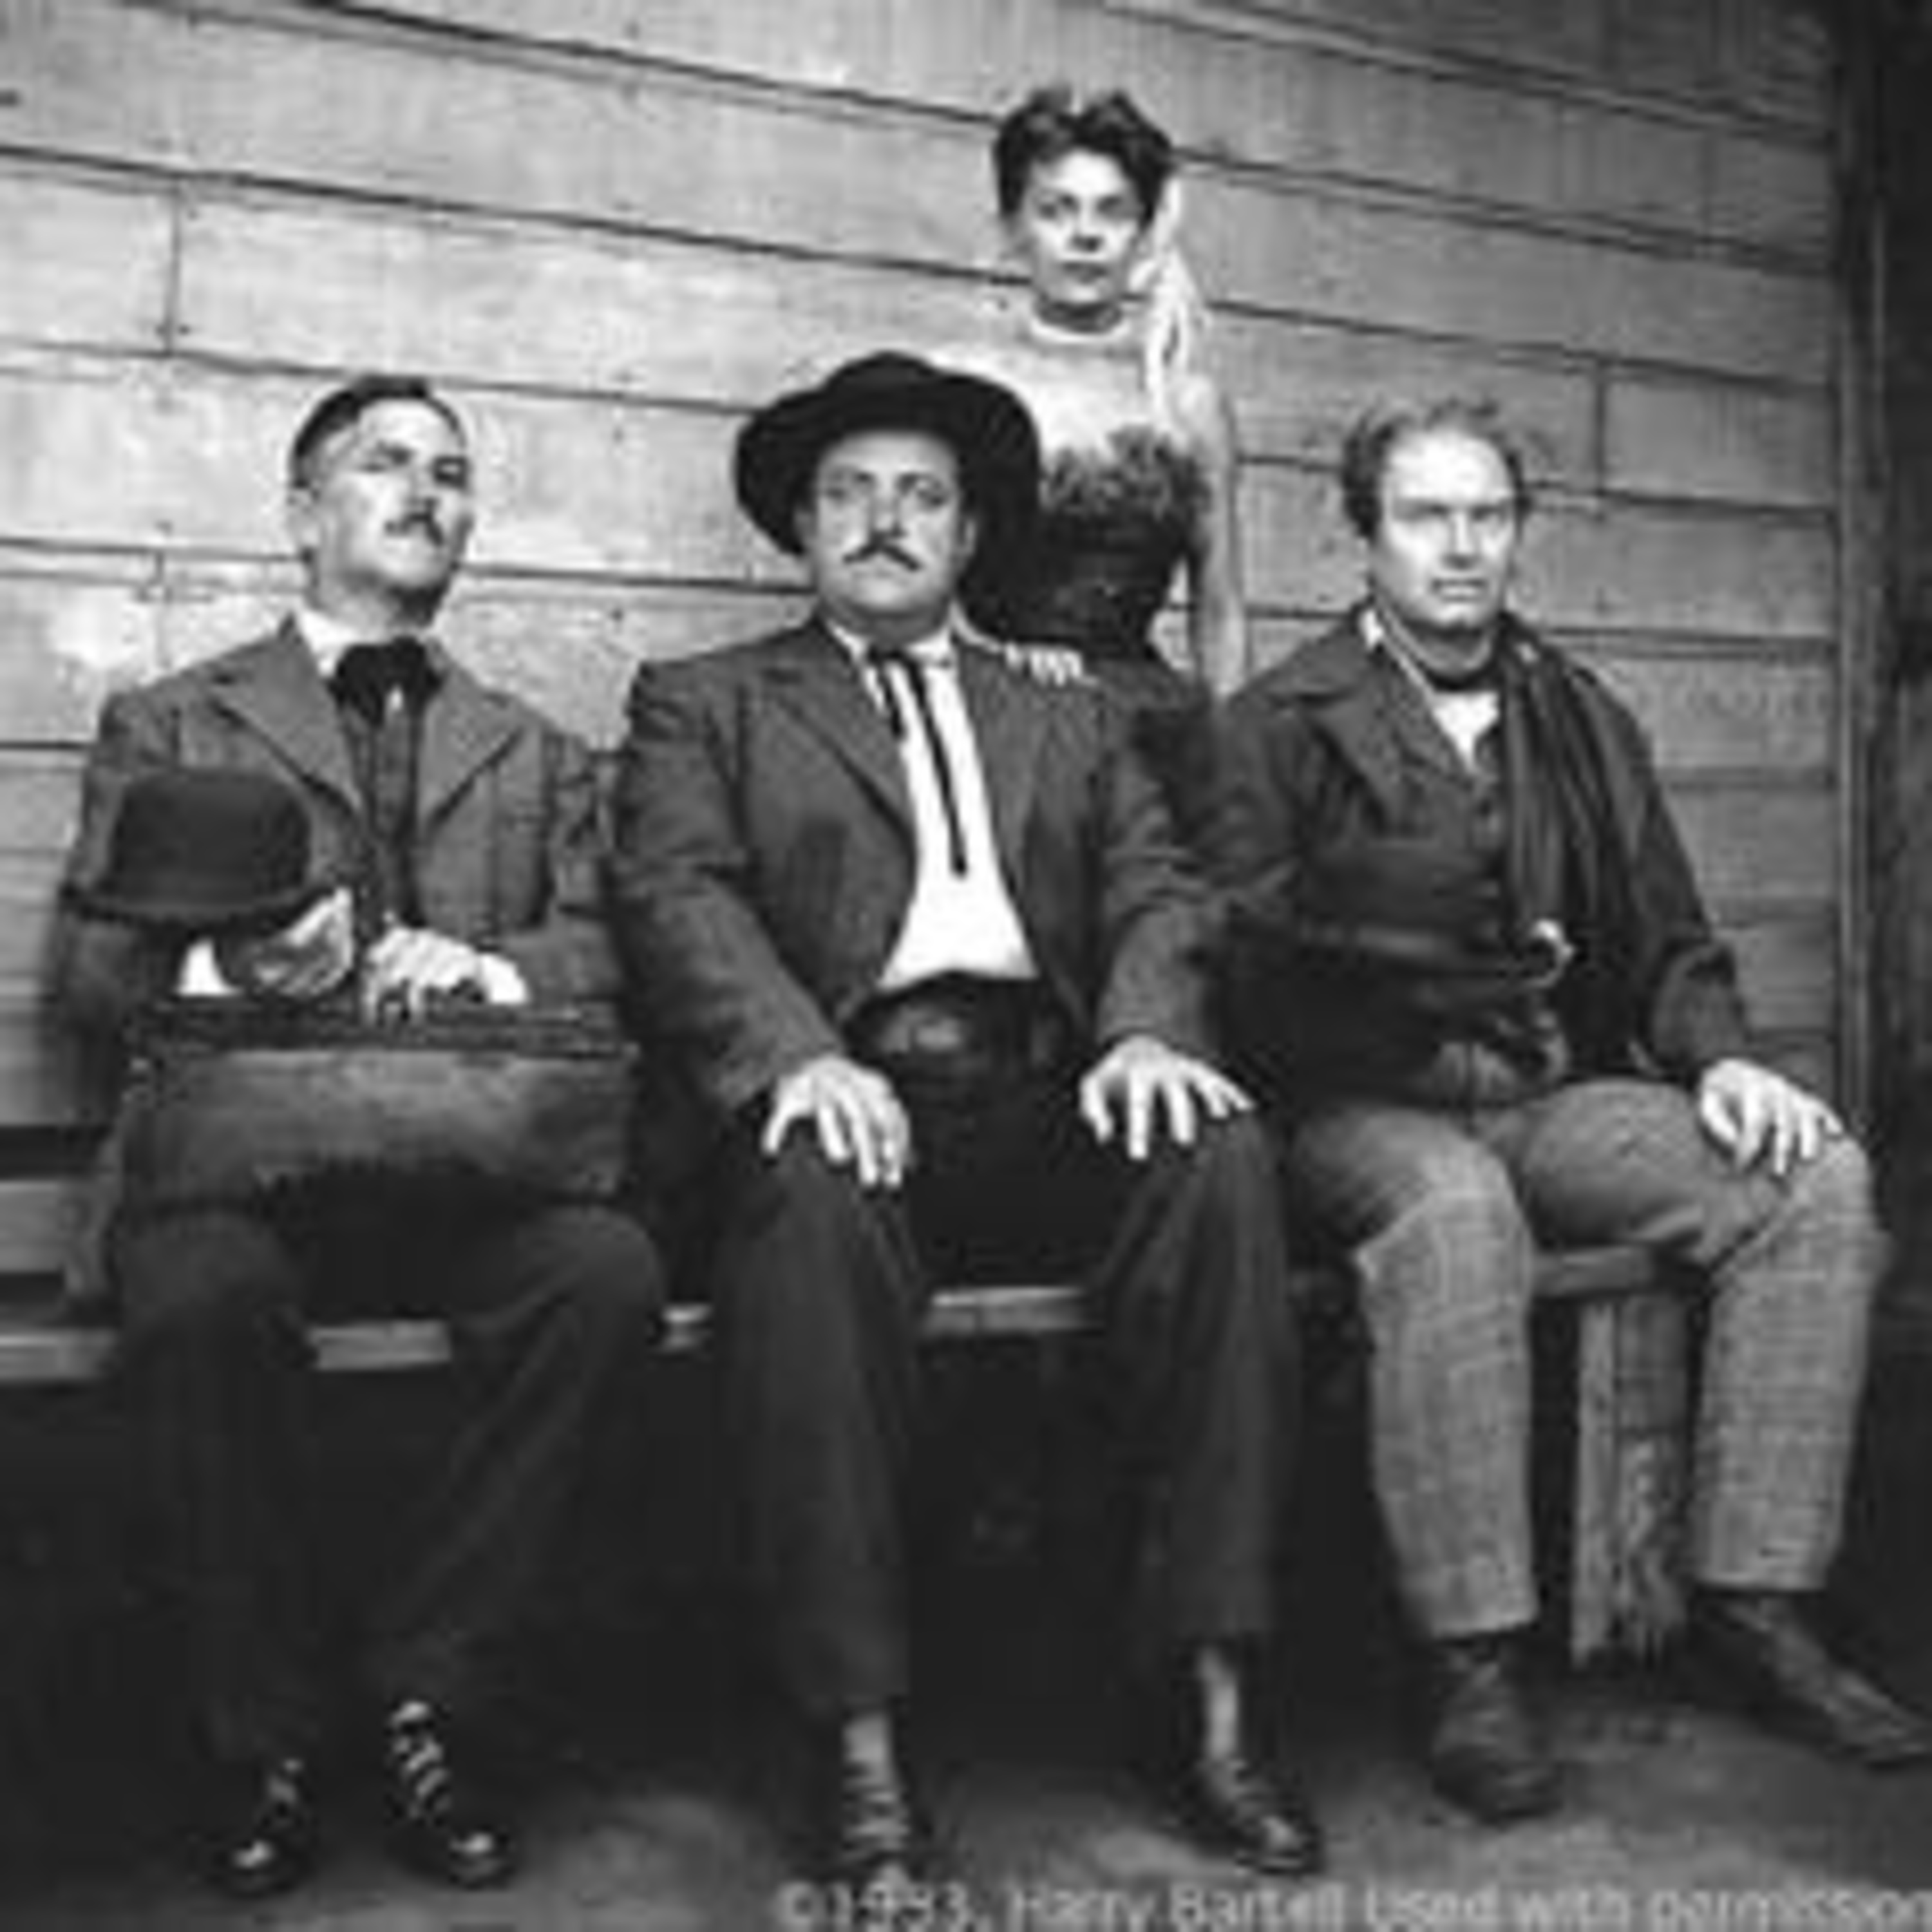 The Gunsmoke Podcast - Sundown - Spring Term - Radio's Last Great Dramatic Series - Episodes 59 and 60